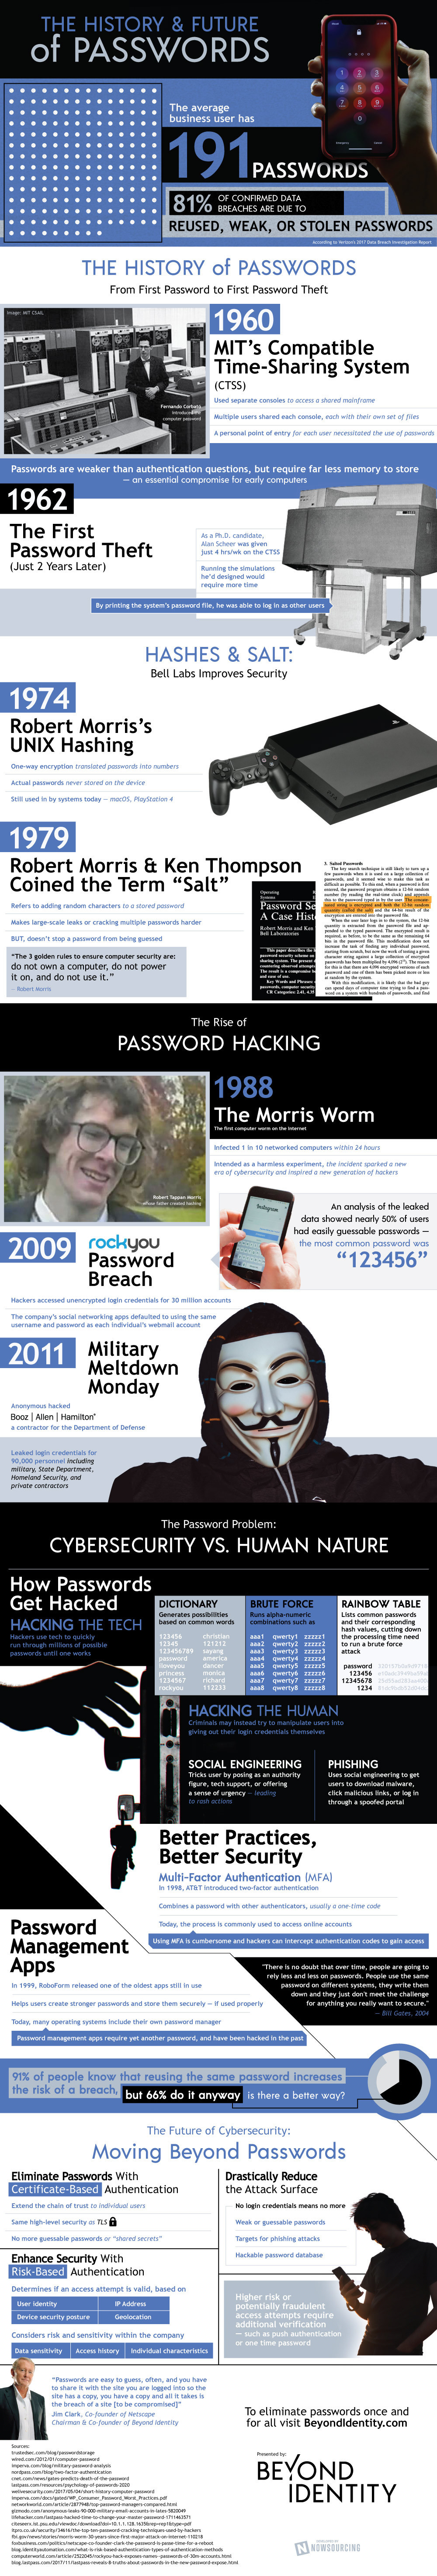 The History and Future of Passwords